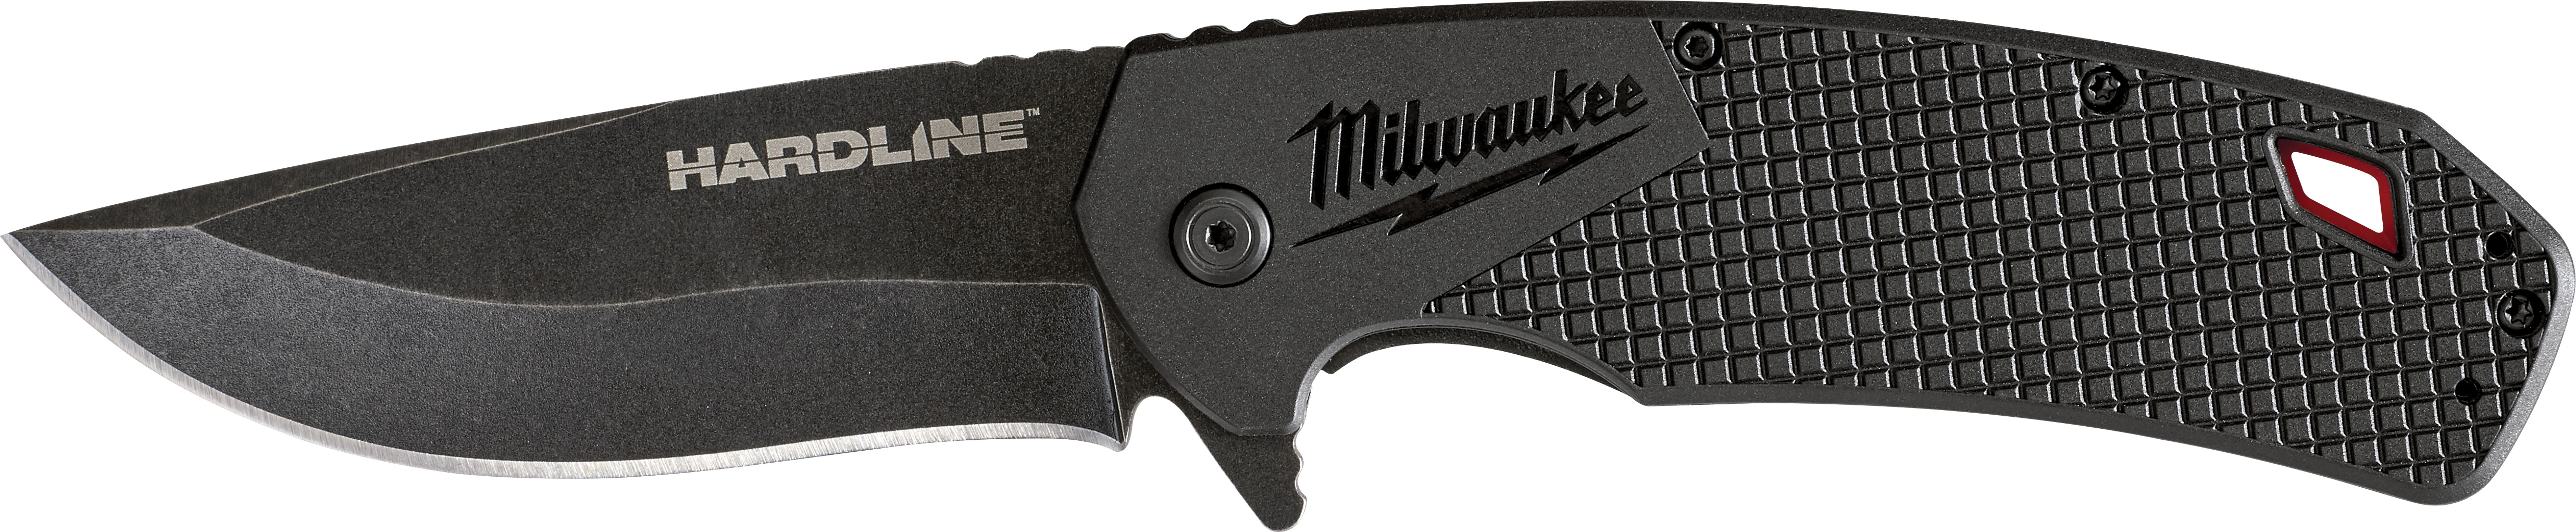 Milwaukee® HARDLINE™ 48-22-1999B Boxed Pocket Knife, D2 Steel Drop Point Smooth Blade, 3-1/2 in L Blade, Stainless Steel Grip